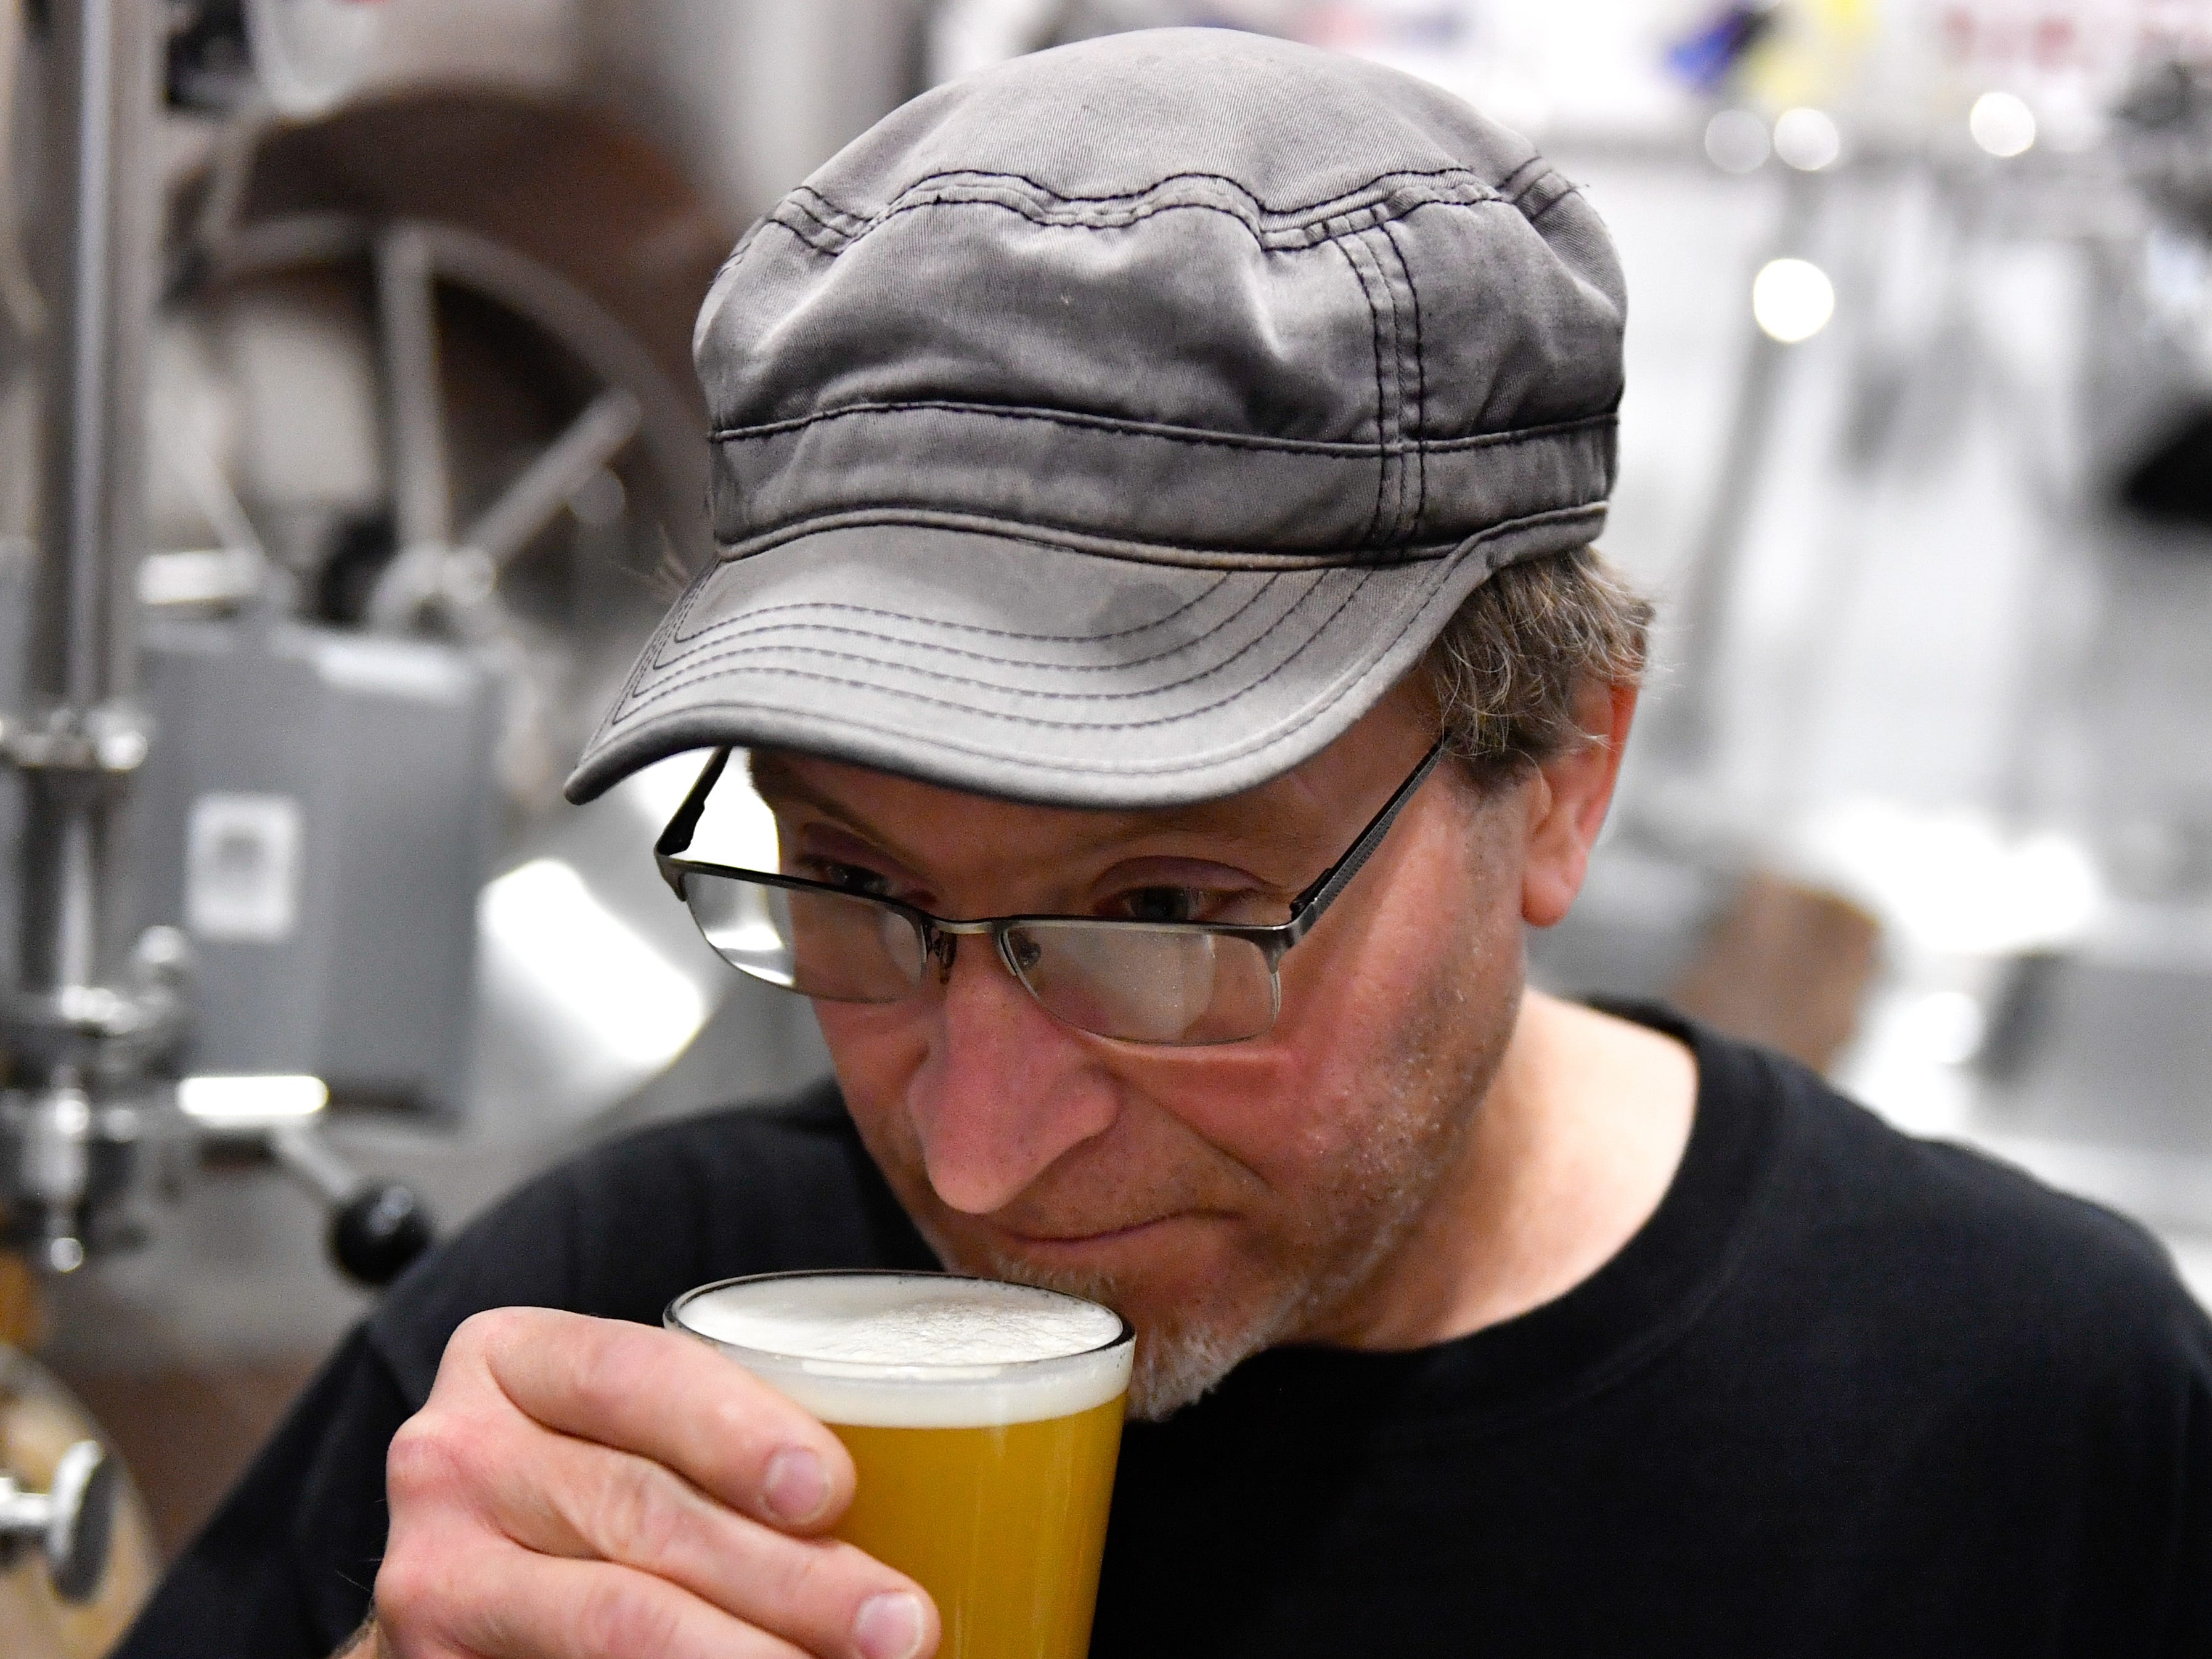 Rick Kunkel can't wait to unveil the New England style IPA. He is certain that it'll be a big hit.